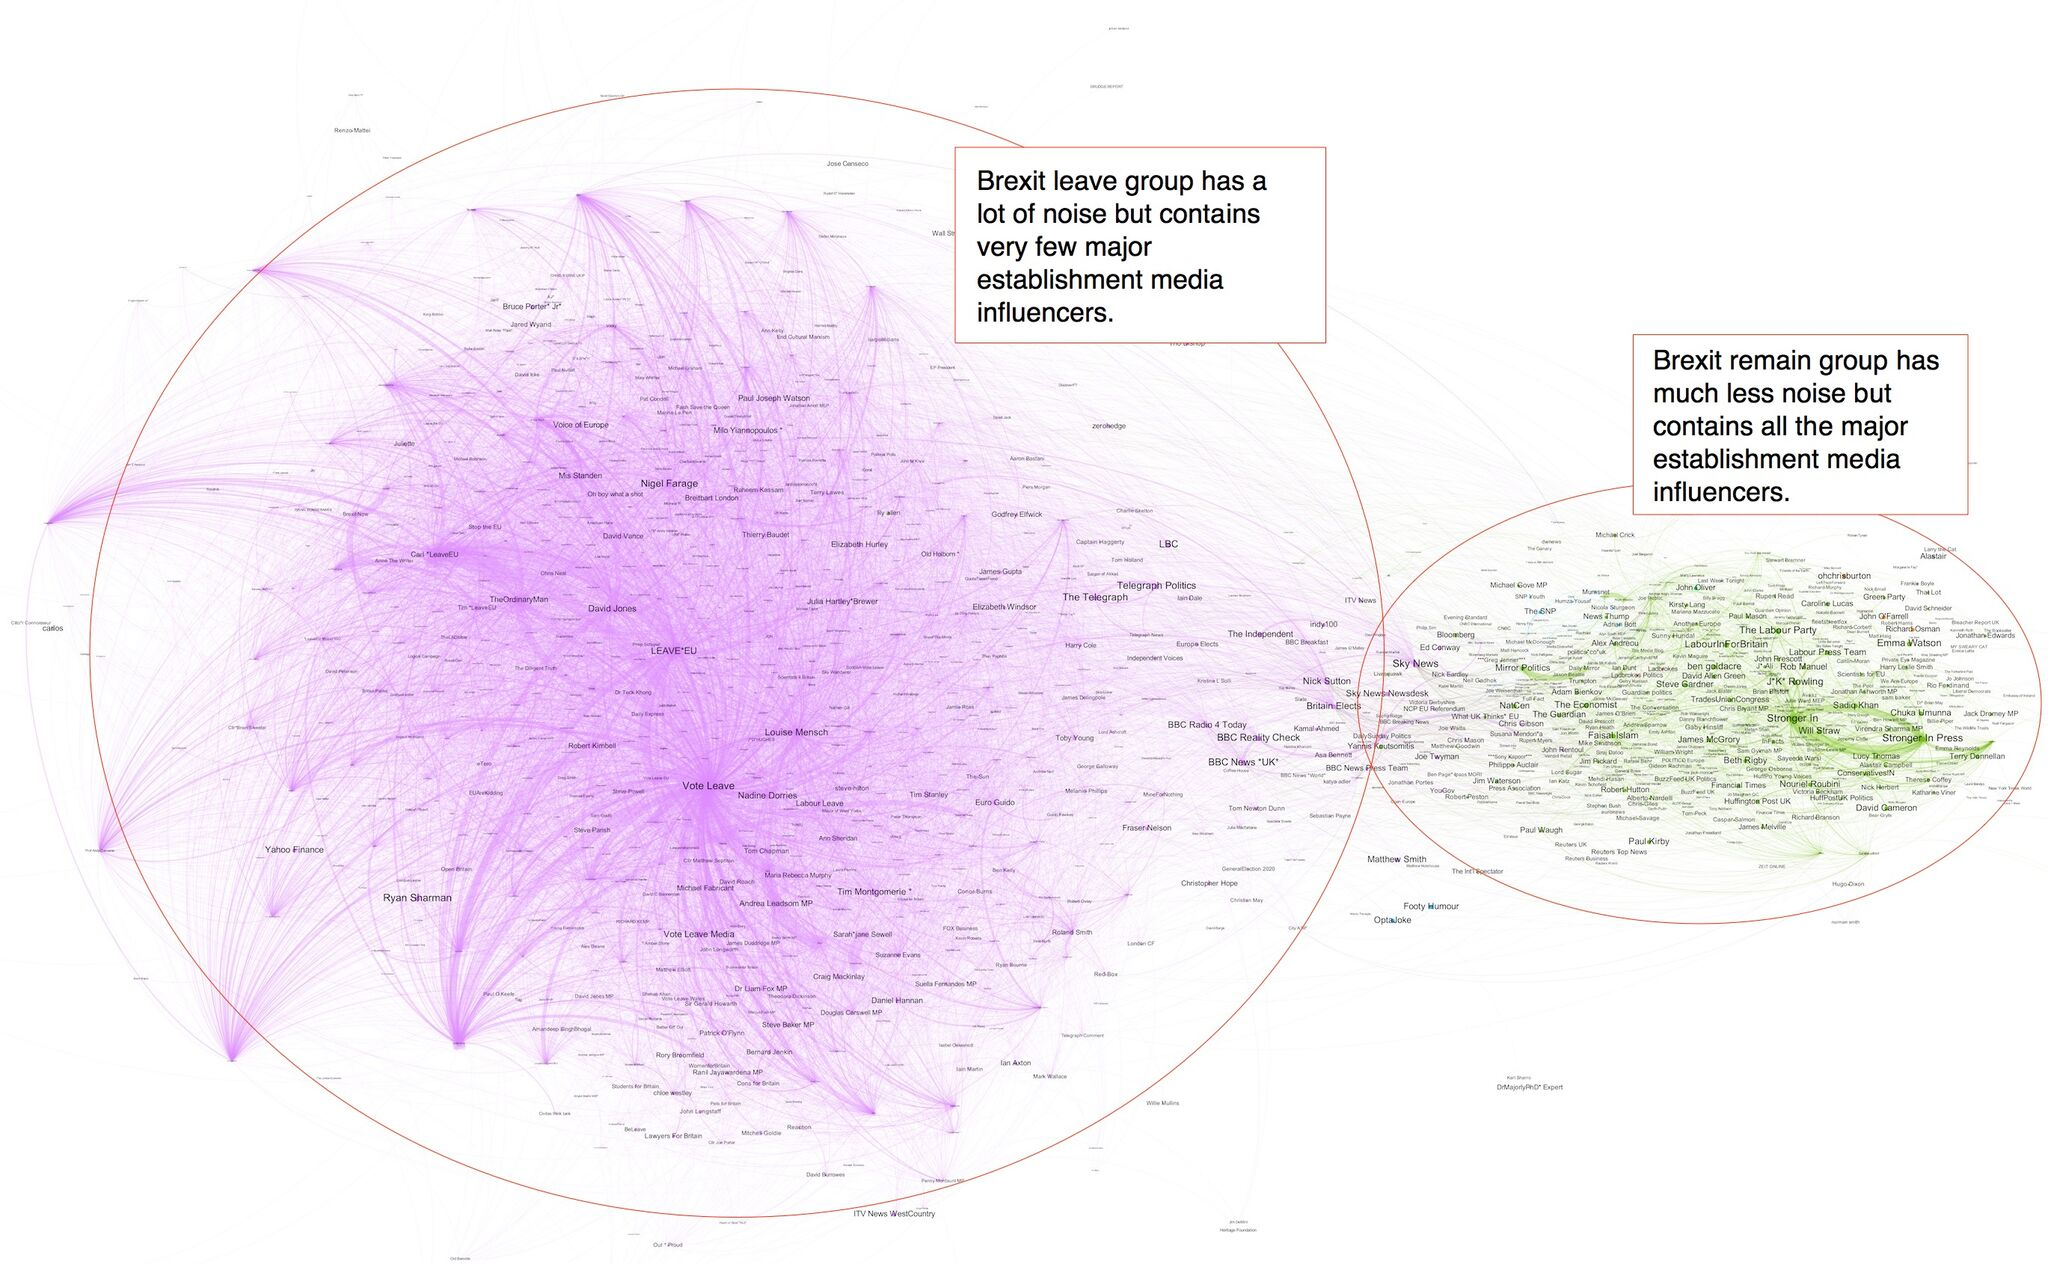 A visualization and analysis of retweets on Twitter from June 20 to June 22 leading up to the June 23 Brexit vote, in which the United Kingdom determined to leave the European Union.